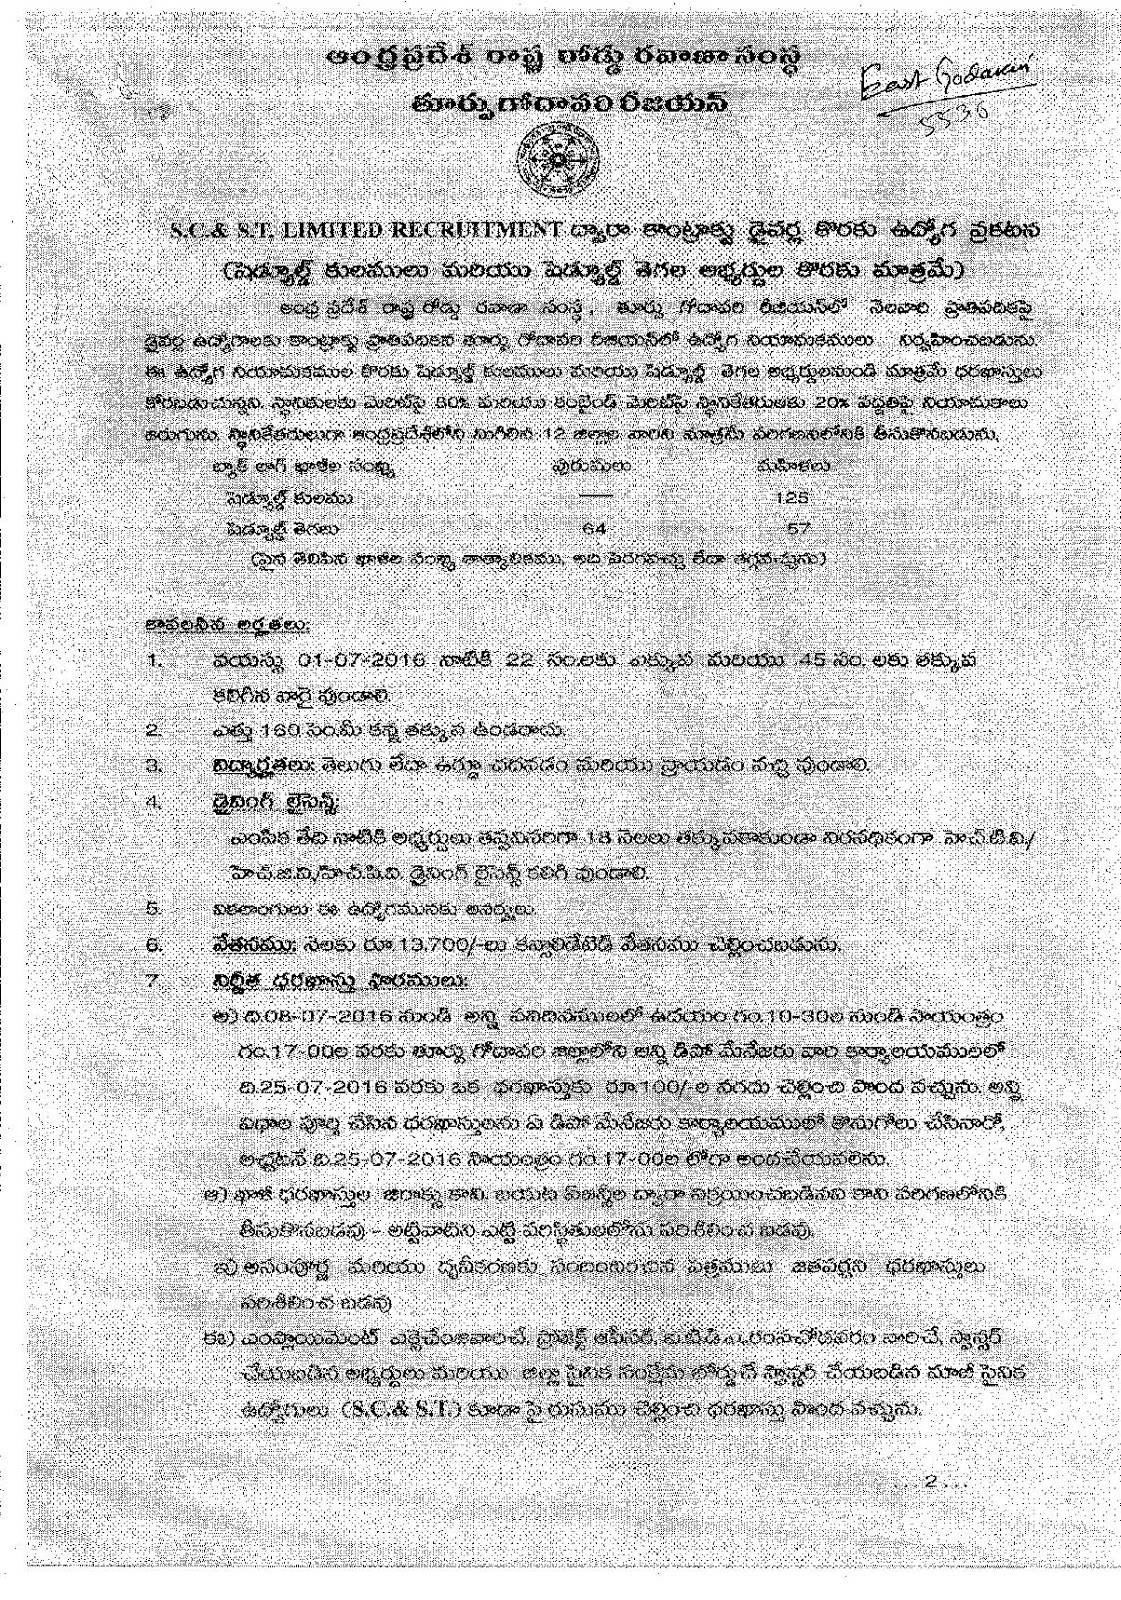 East Godavari APSRTC SC/ ST Backlog Posts Recruitment 2016 APSRTC SC/ ST Backlog Vacancies Recruitment 2016 East Godavari Region APSRTC Regional Manager invites applications from SC/ ST candidates for the recruitment 246 Driver Posts  Conductor posts education Qualification age limit required certificated documents salary application fee complete guidelines how to apply for apsrtc sc st backlog posts in online instruction given below.